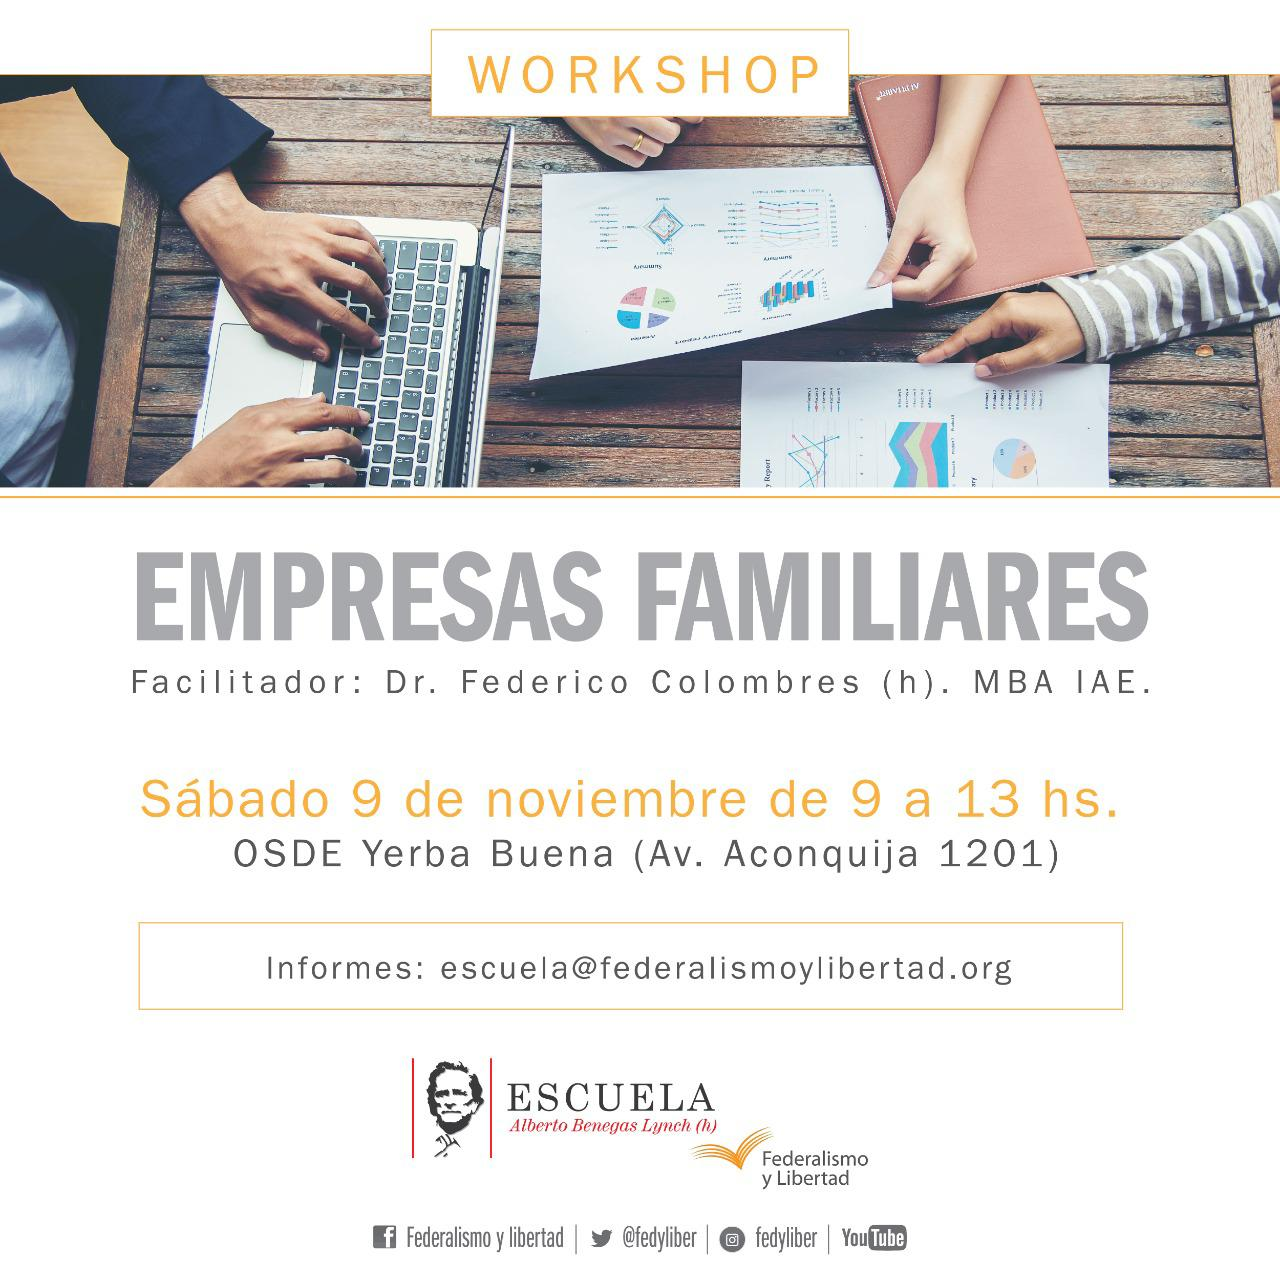 Workshop: Empresas familiares (Tucumán)